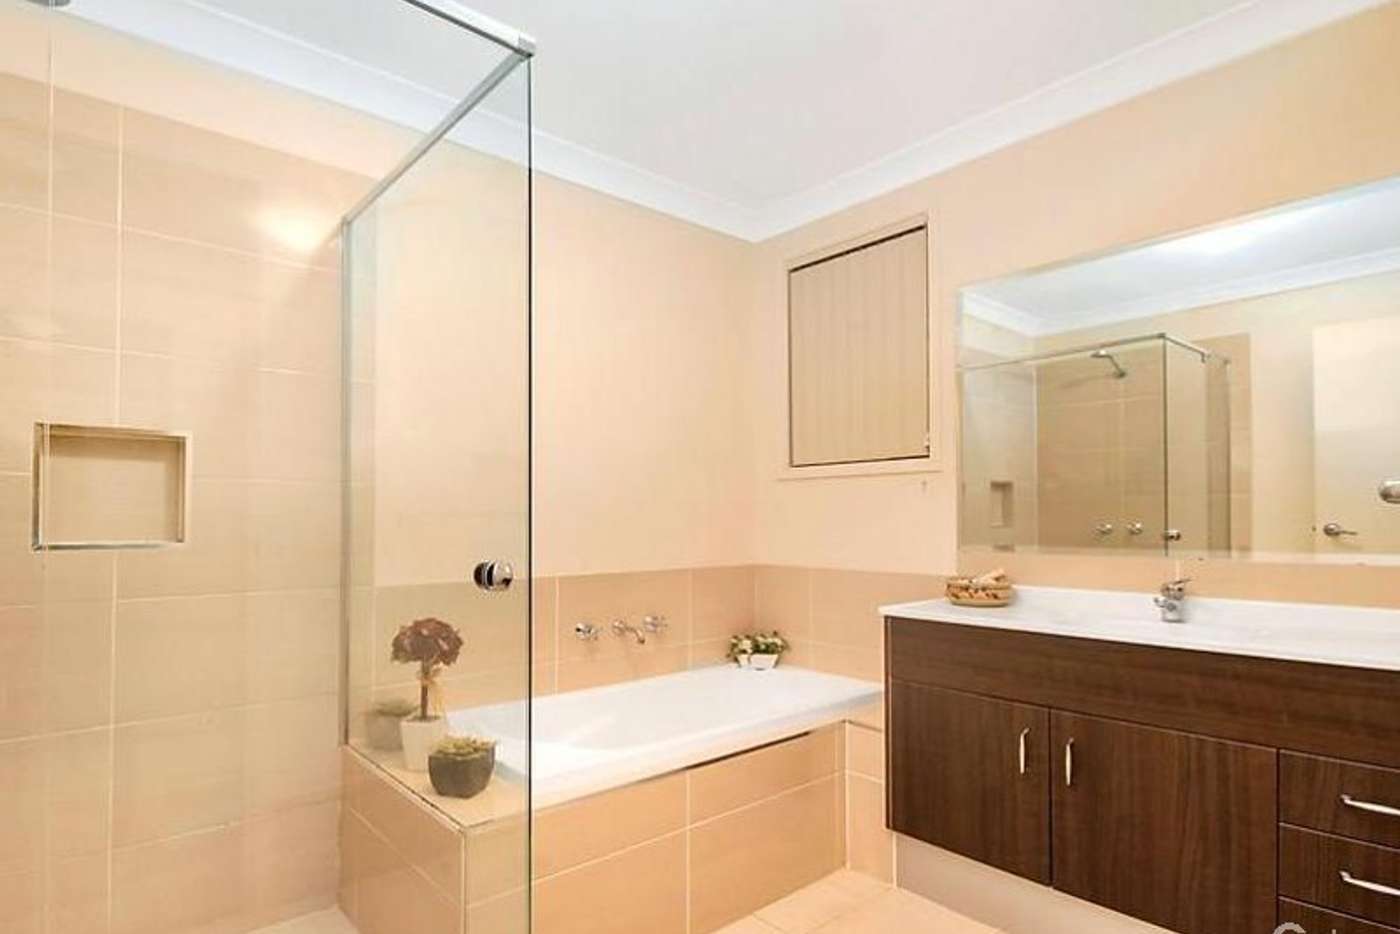 Sixth view of Homely house listing, 18 Rosebrook Ave, Kellyville Ridge NSW 2155